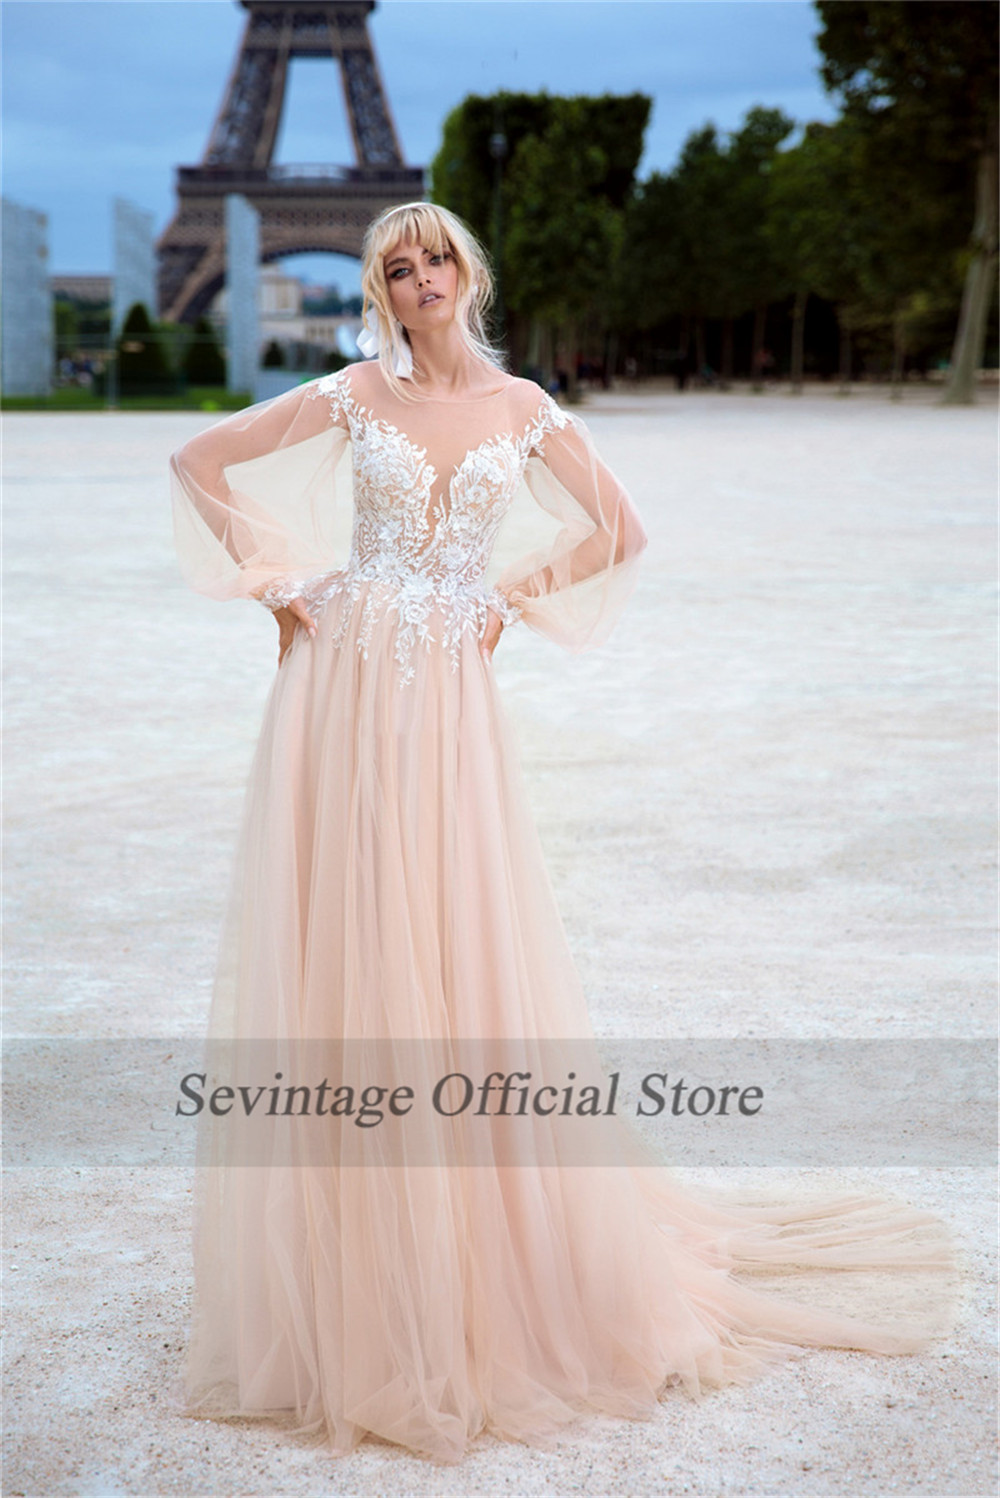 Sevintage Illusion Scoop Boho Wedding Dresses Long Sleeves Lace Appliqued Beach Bridal Gowns Buttons Back Vestido De Noiva